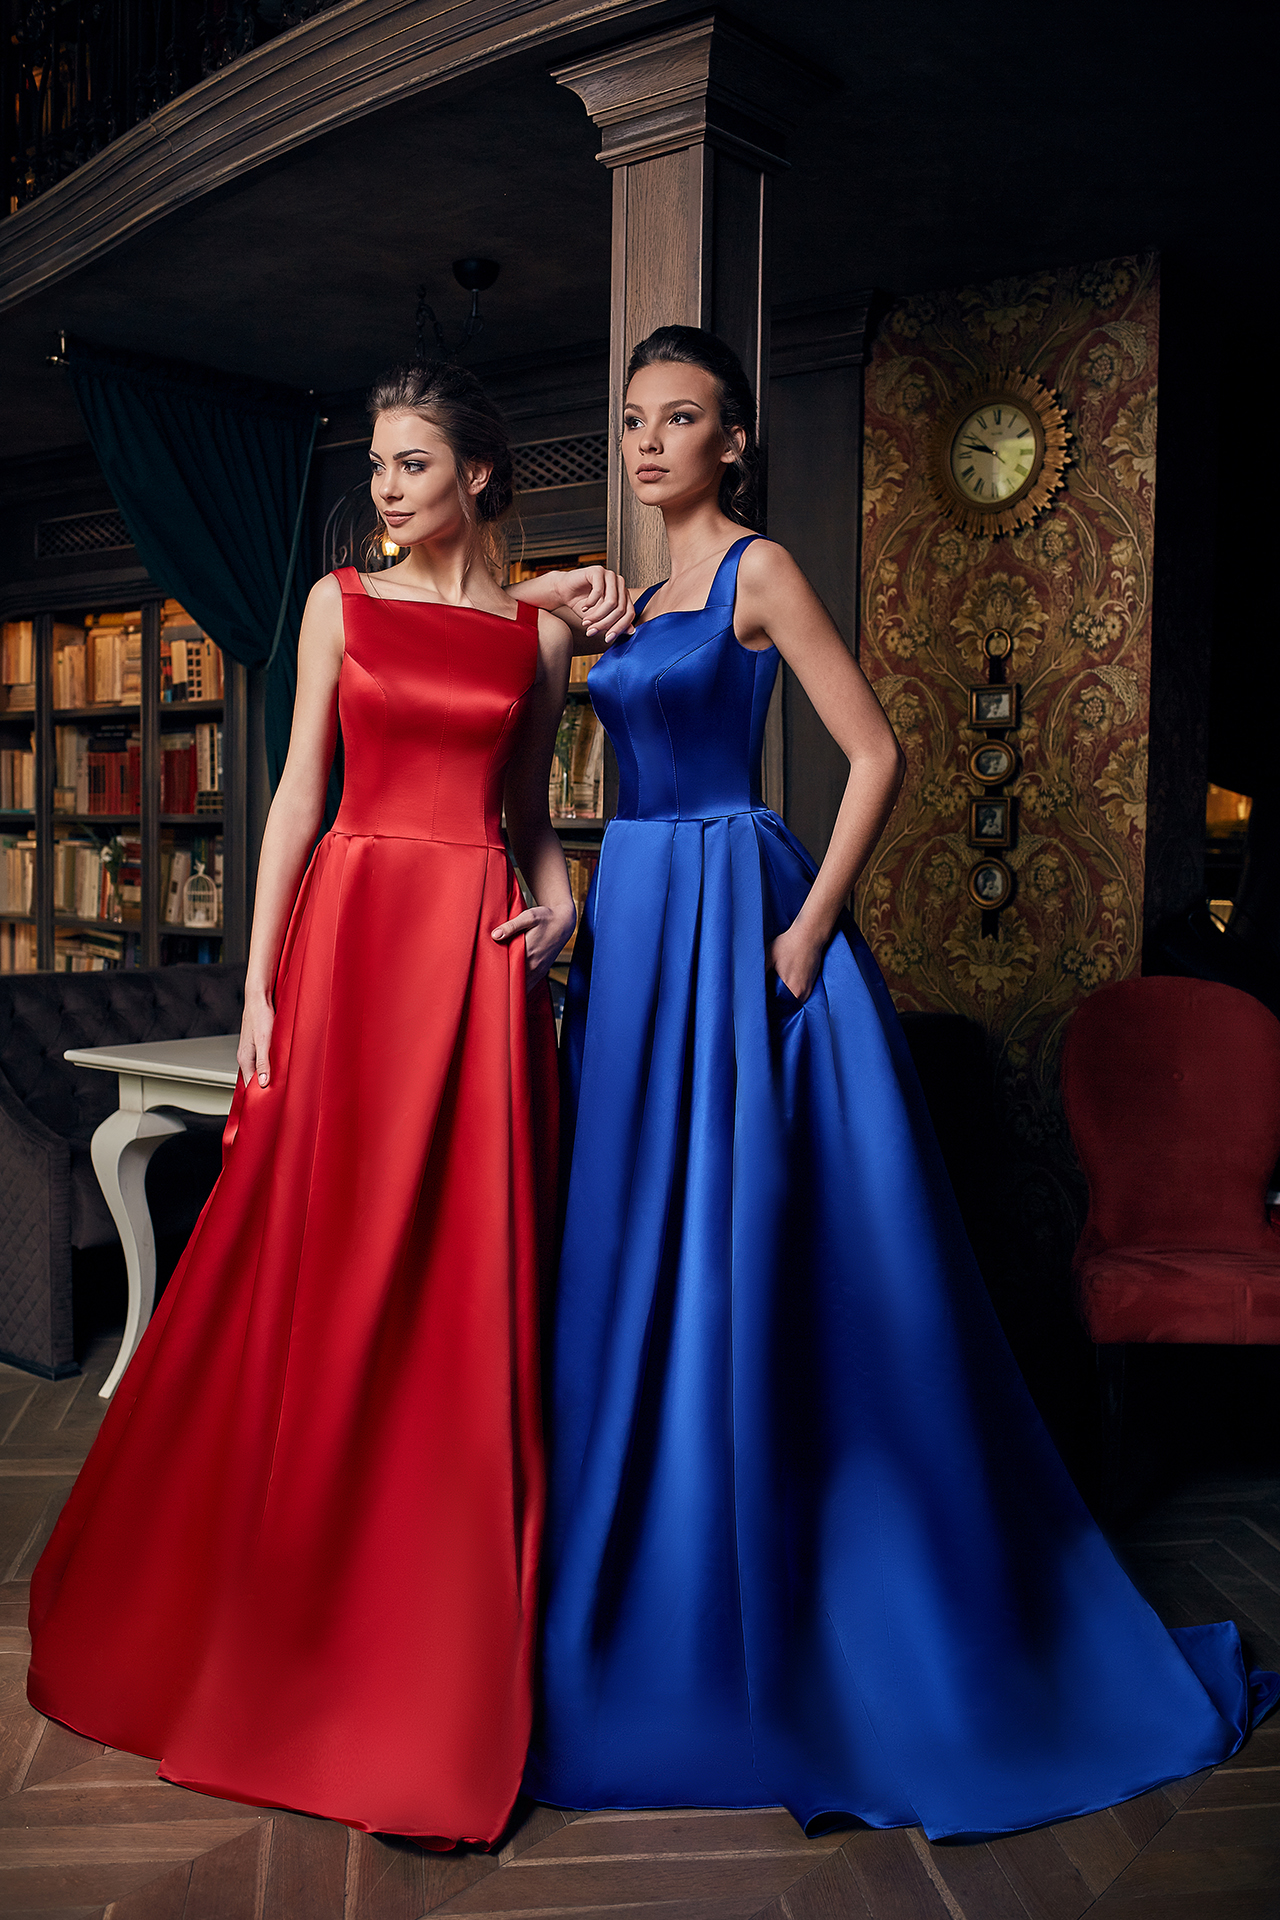 Evening gowns 1231 blue Silhouette  A Line  Color  Blue  Red  Neckline  Straight  Sleeves  Wide straps  Train  With train